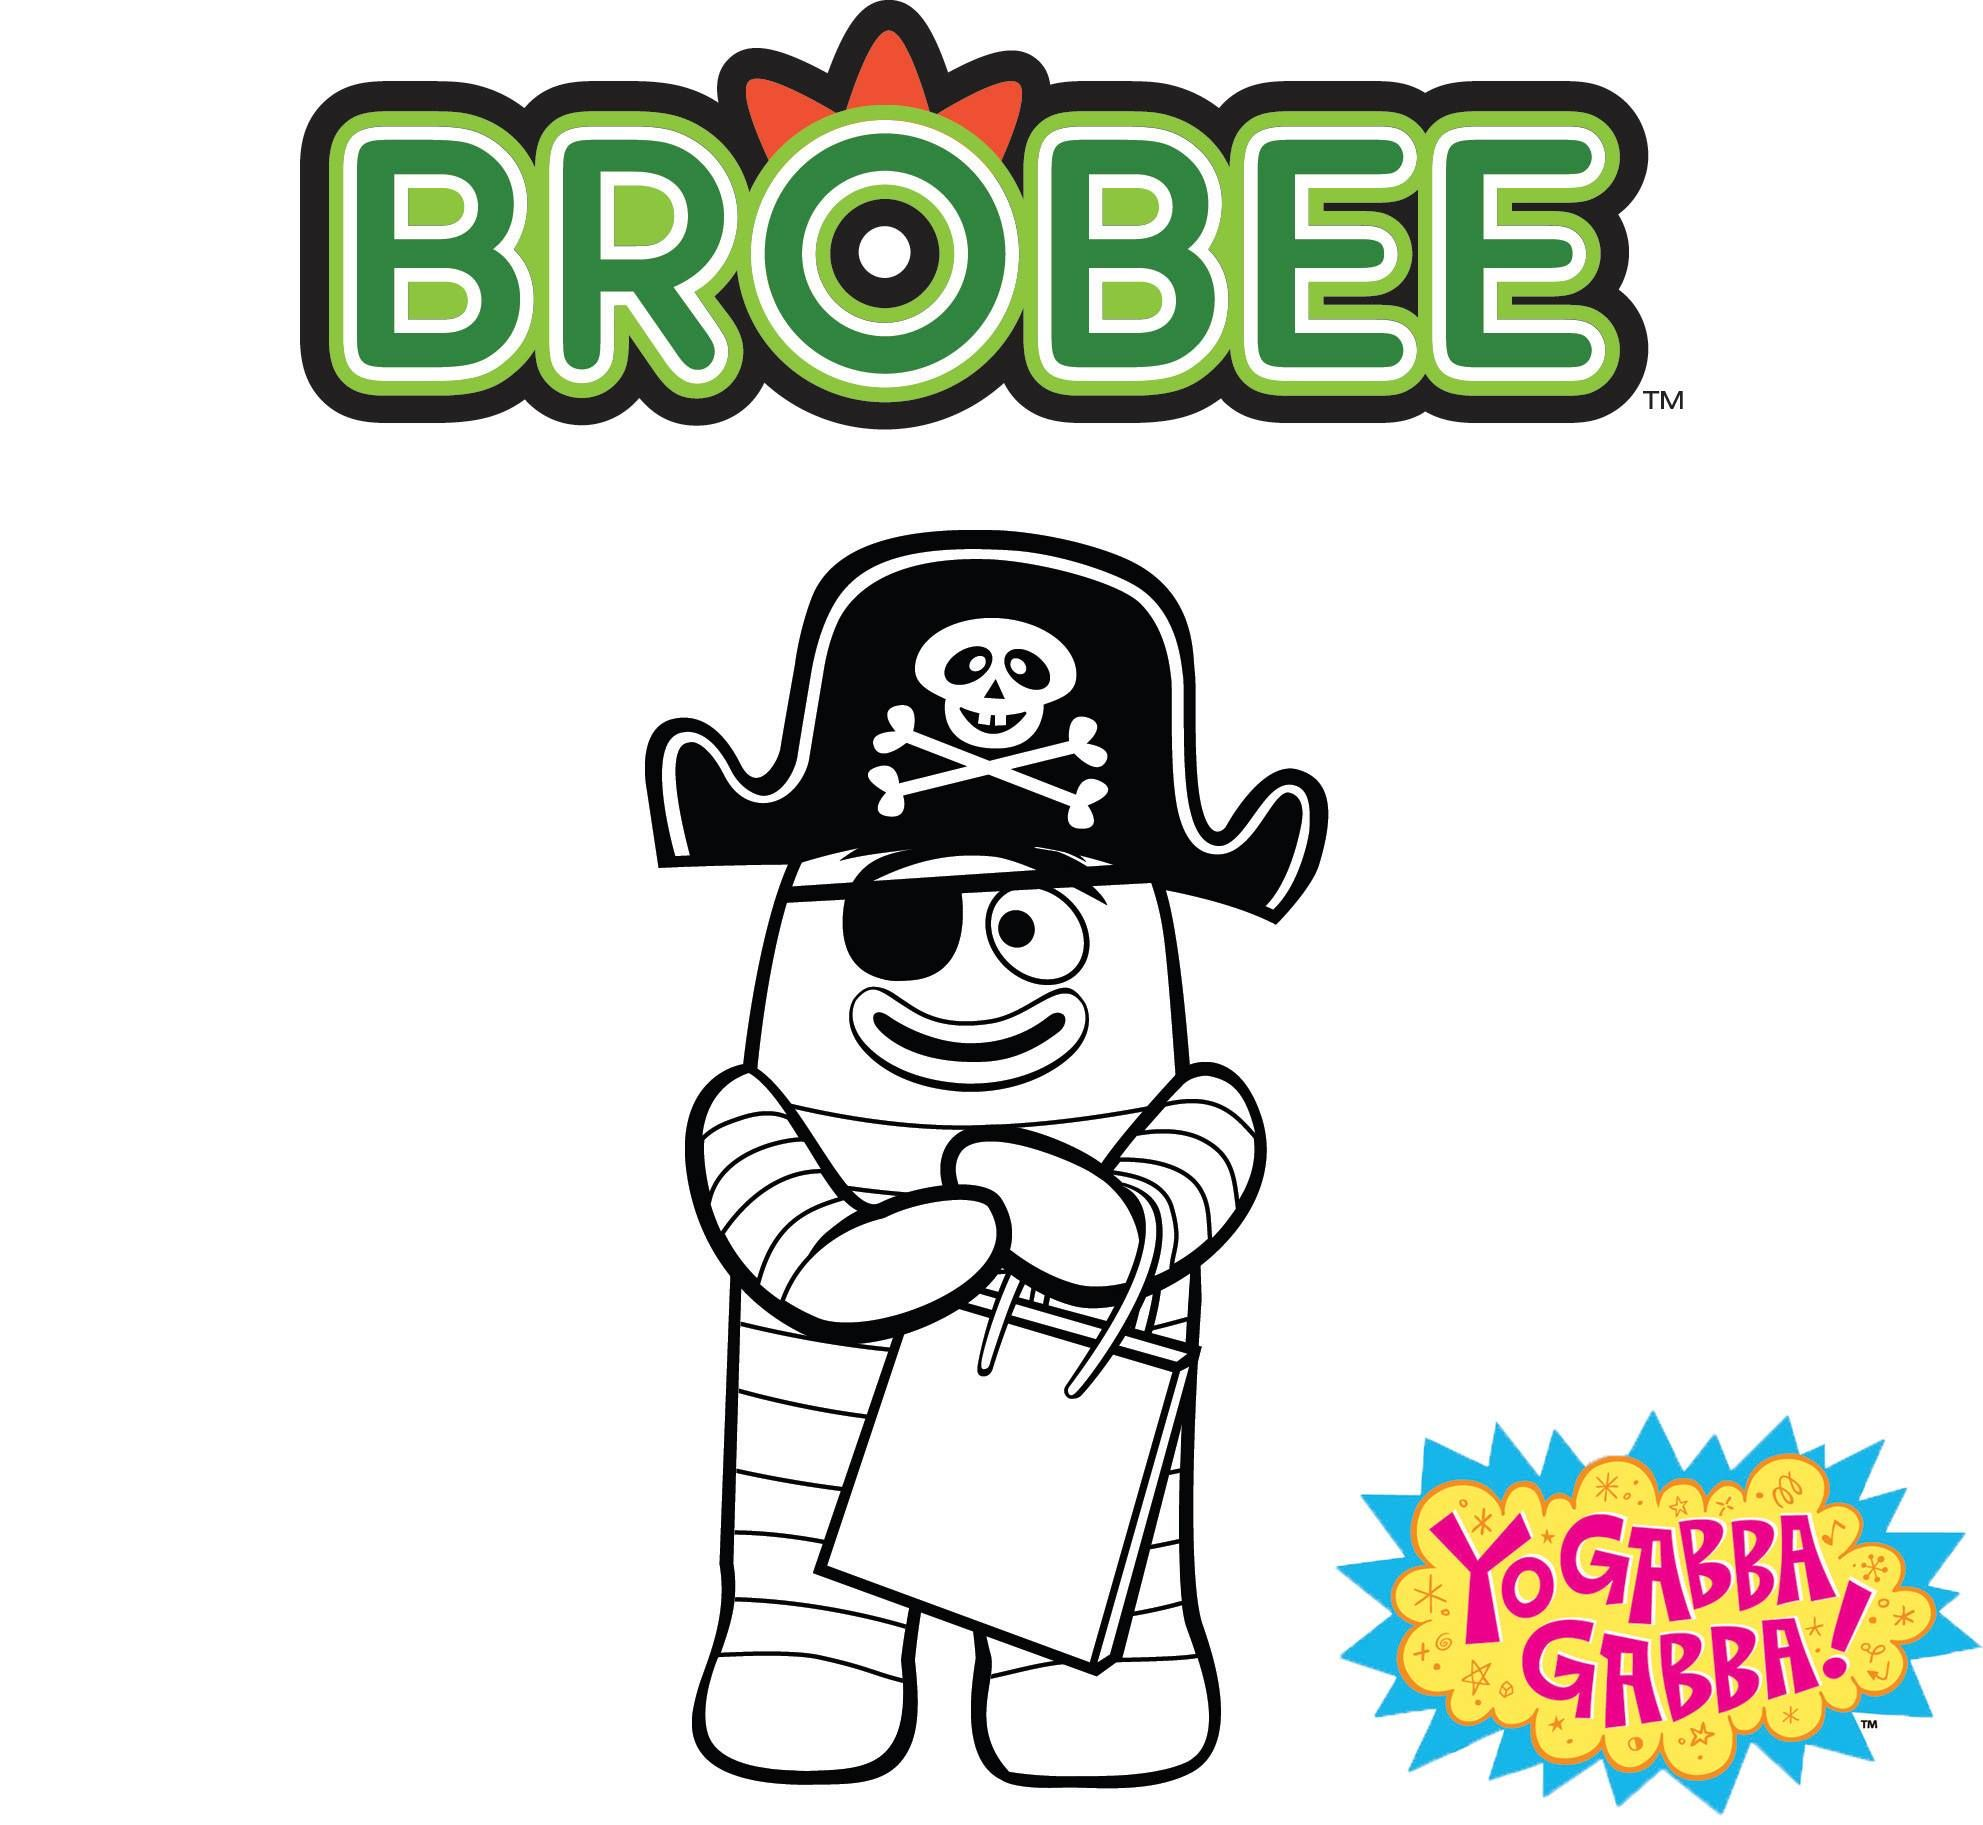 Coloring pages yo gabba gabba - Gabba Gabba Color Pirate Brobee Kids Coloringcoloring Pagesyo